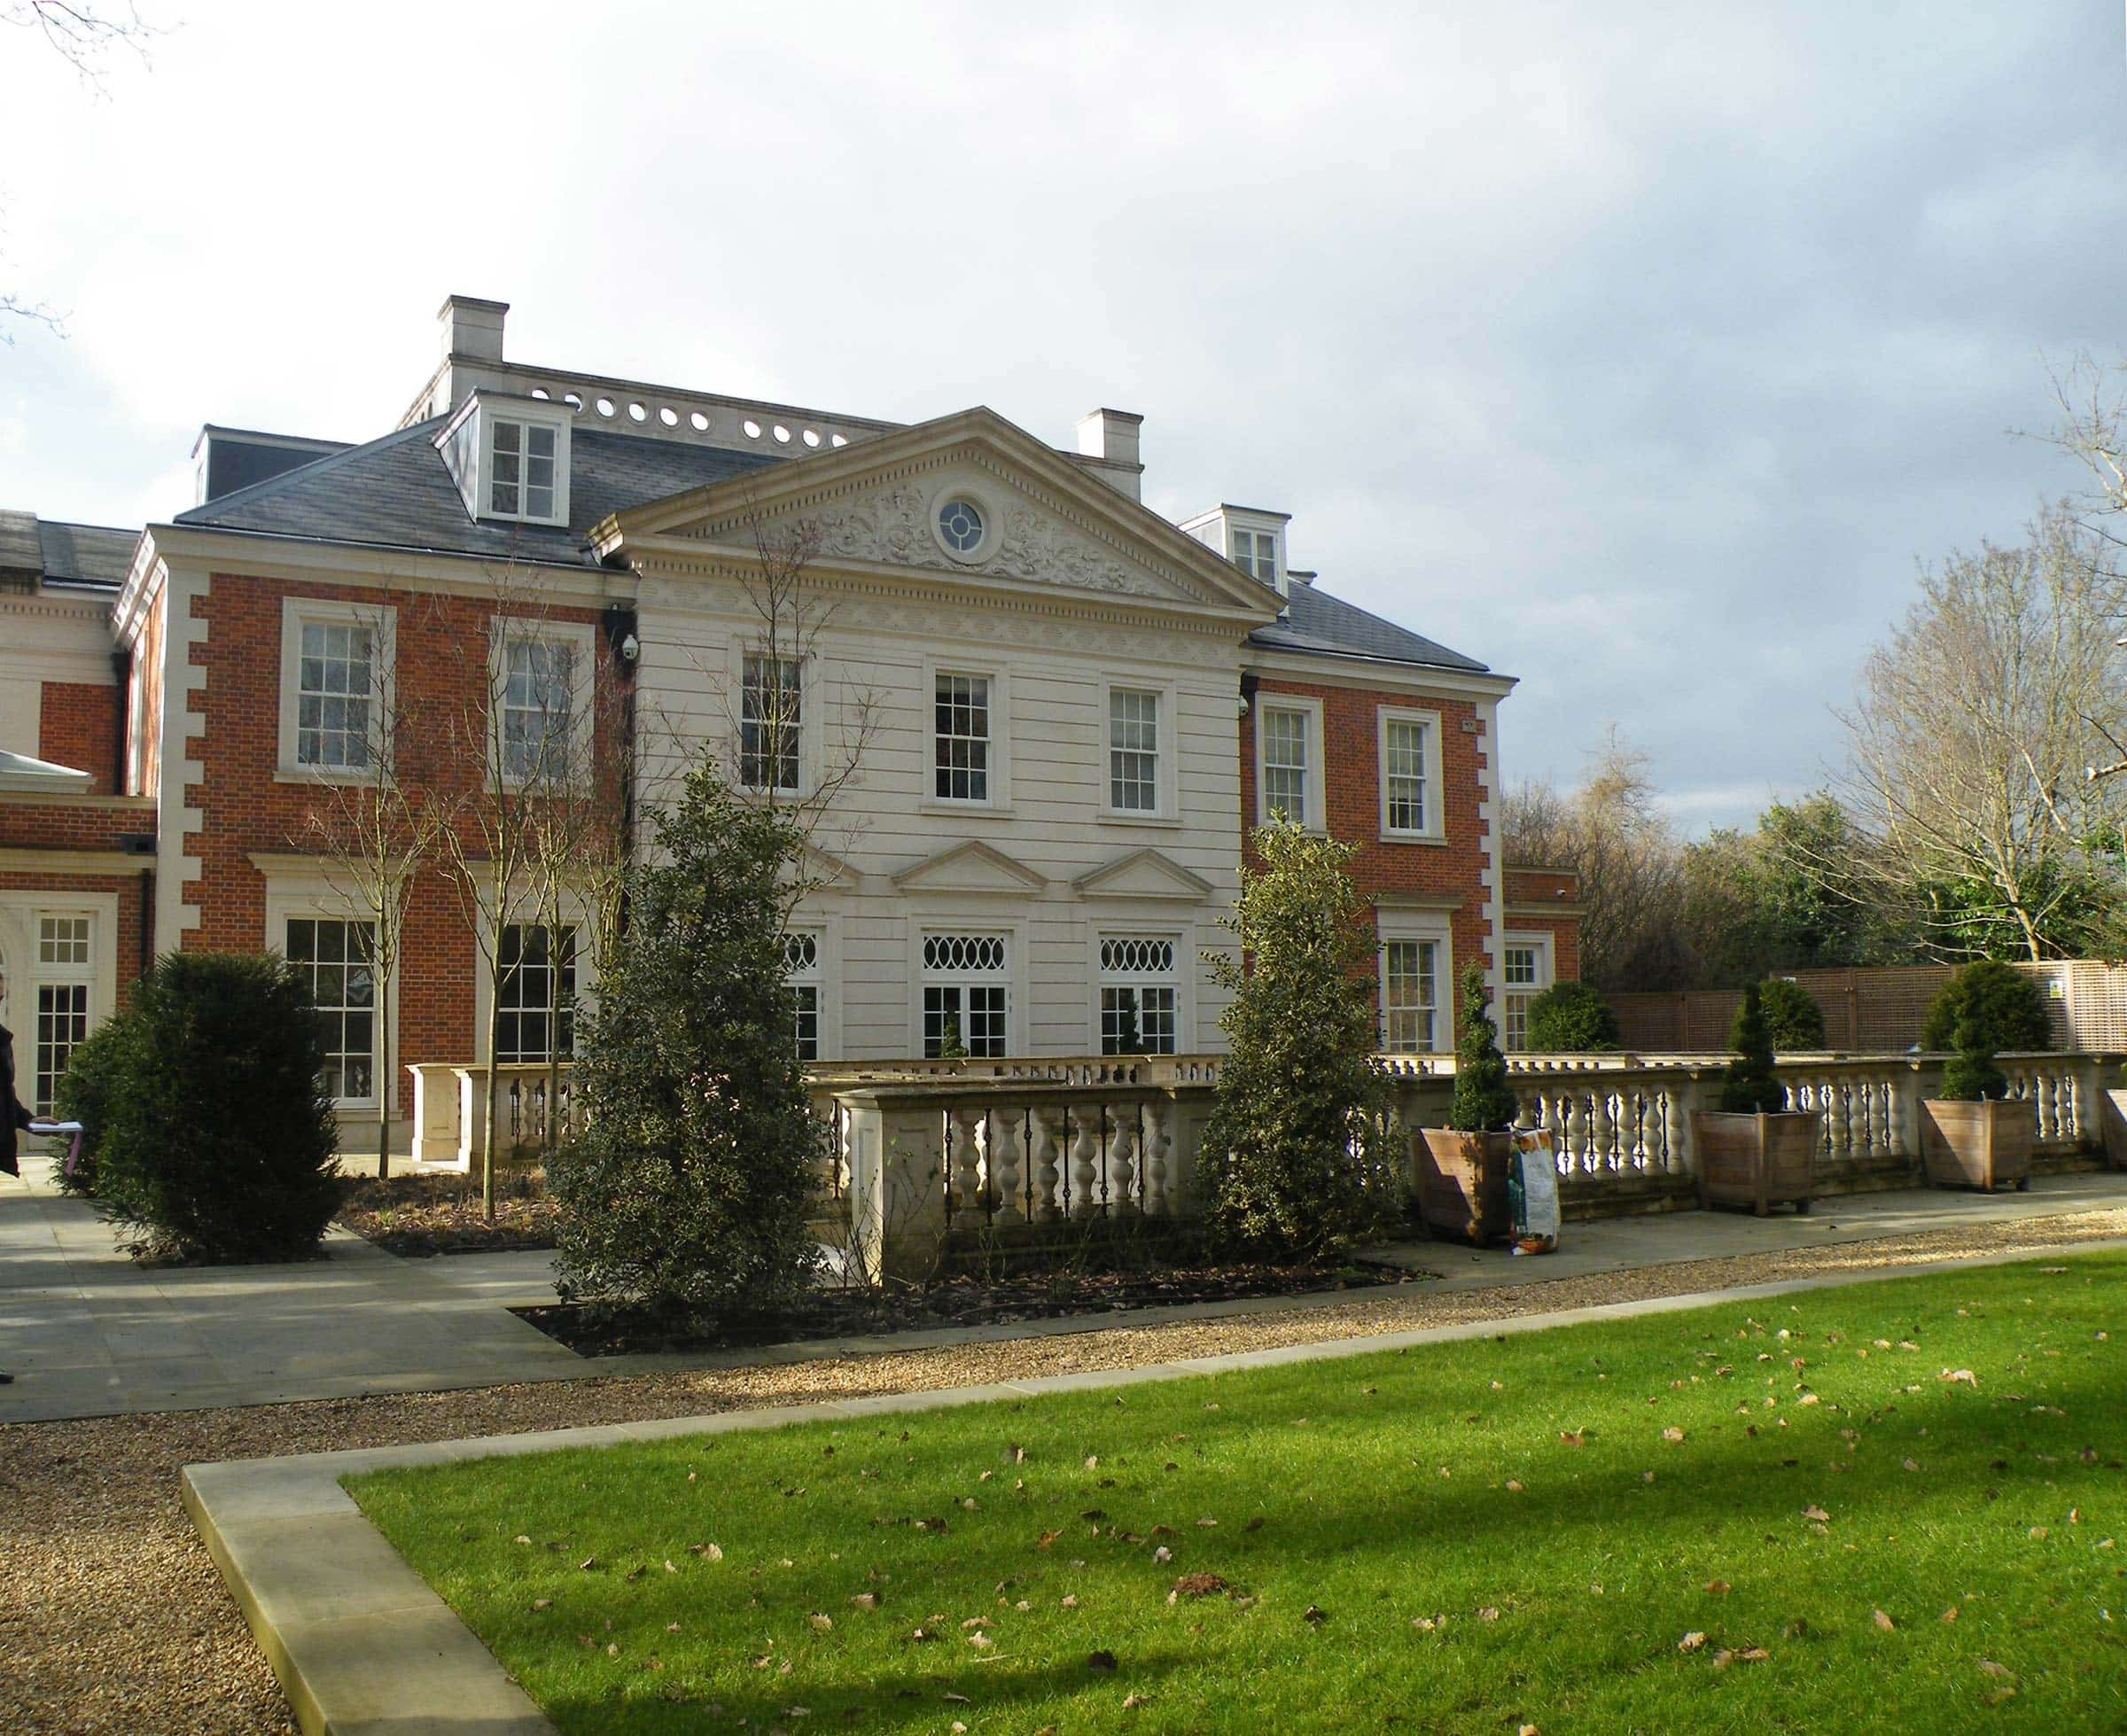 New Classical villa in London Conservation area